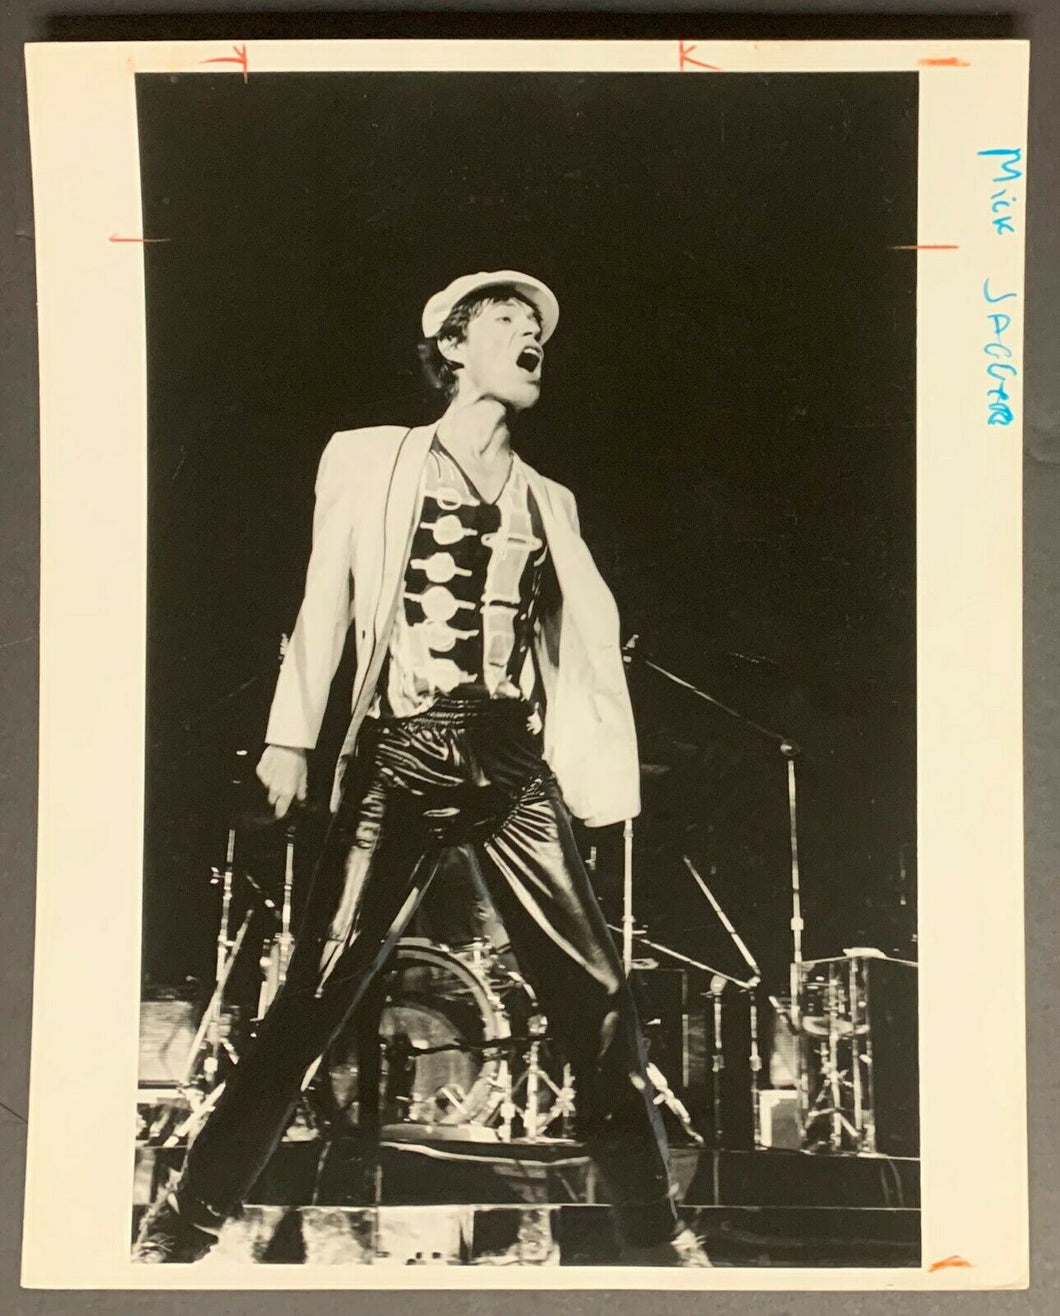 1978 Mick Jagger Rolling Stones North American Tour Lisa Tanner Photo Vintage